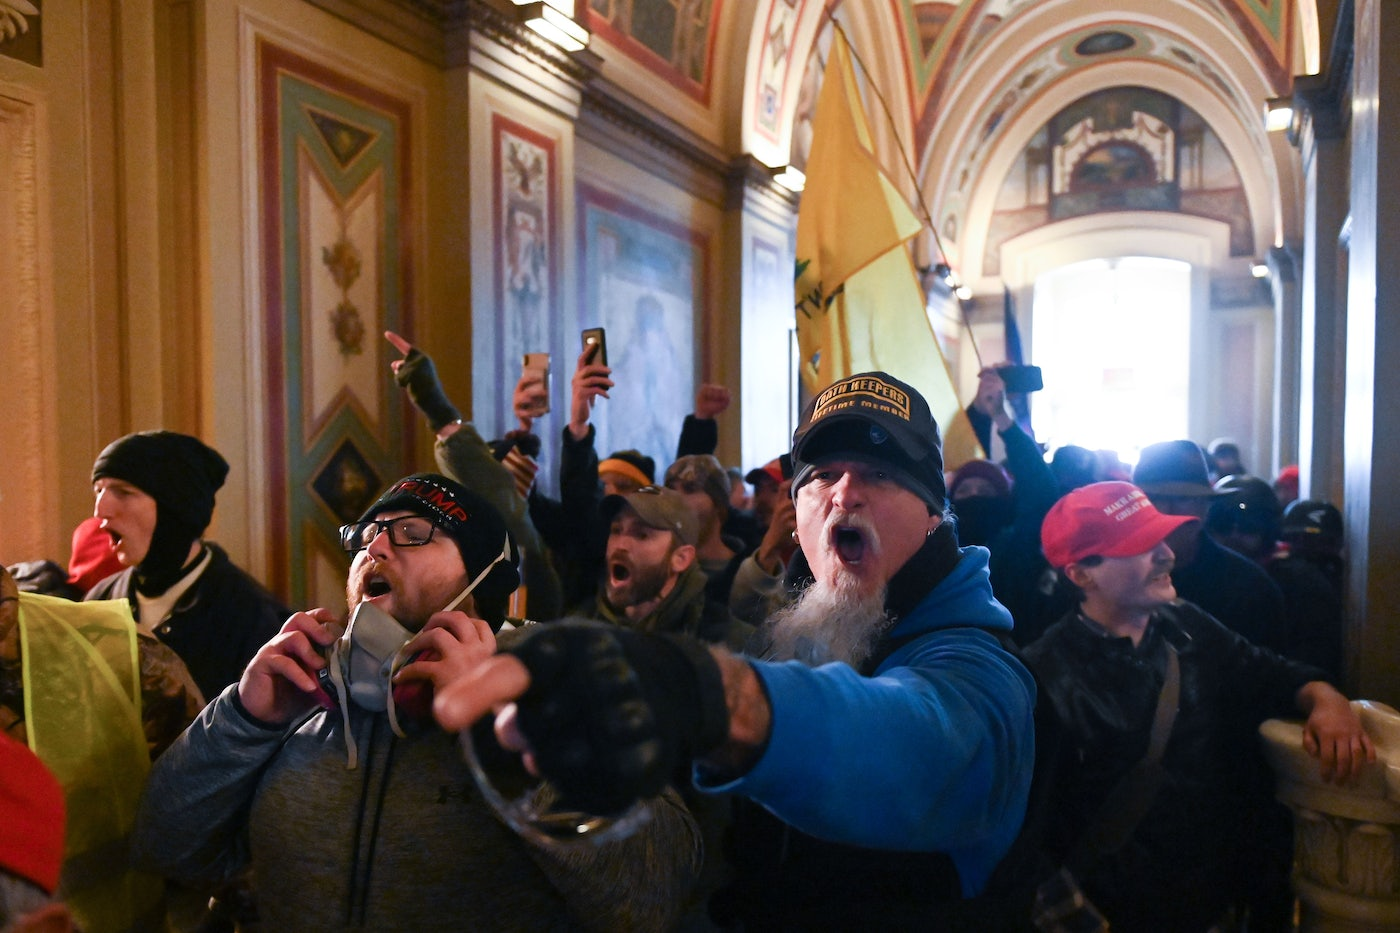 Maskless Trump supporters stand shoulder to shoulder and shout in the U.S. Capitol.